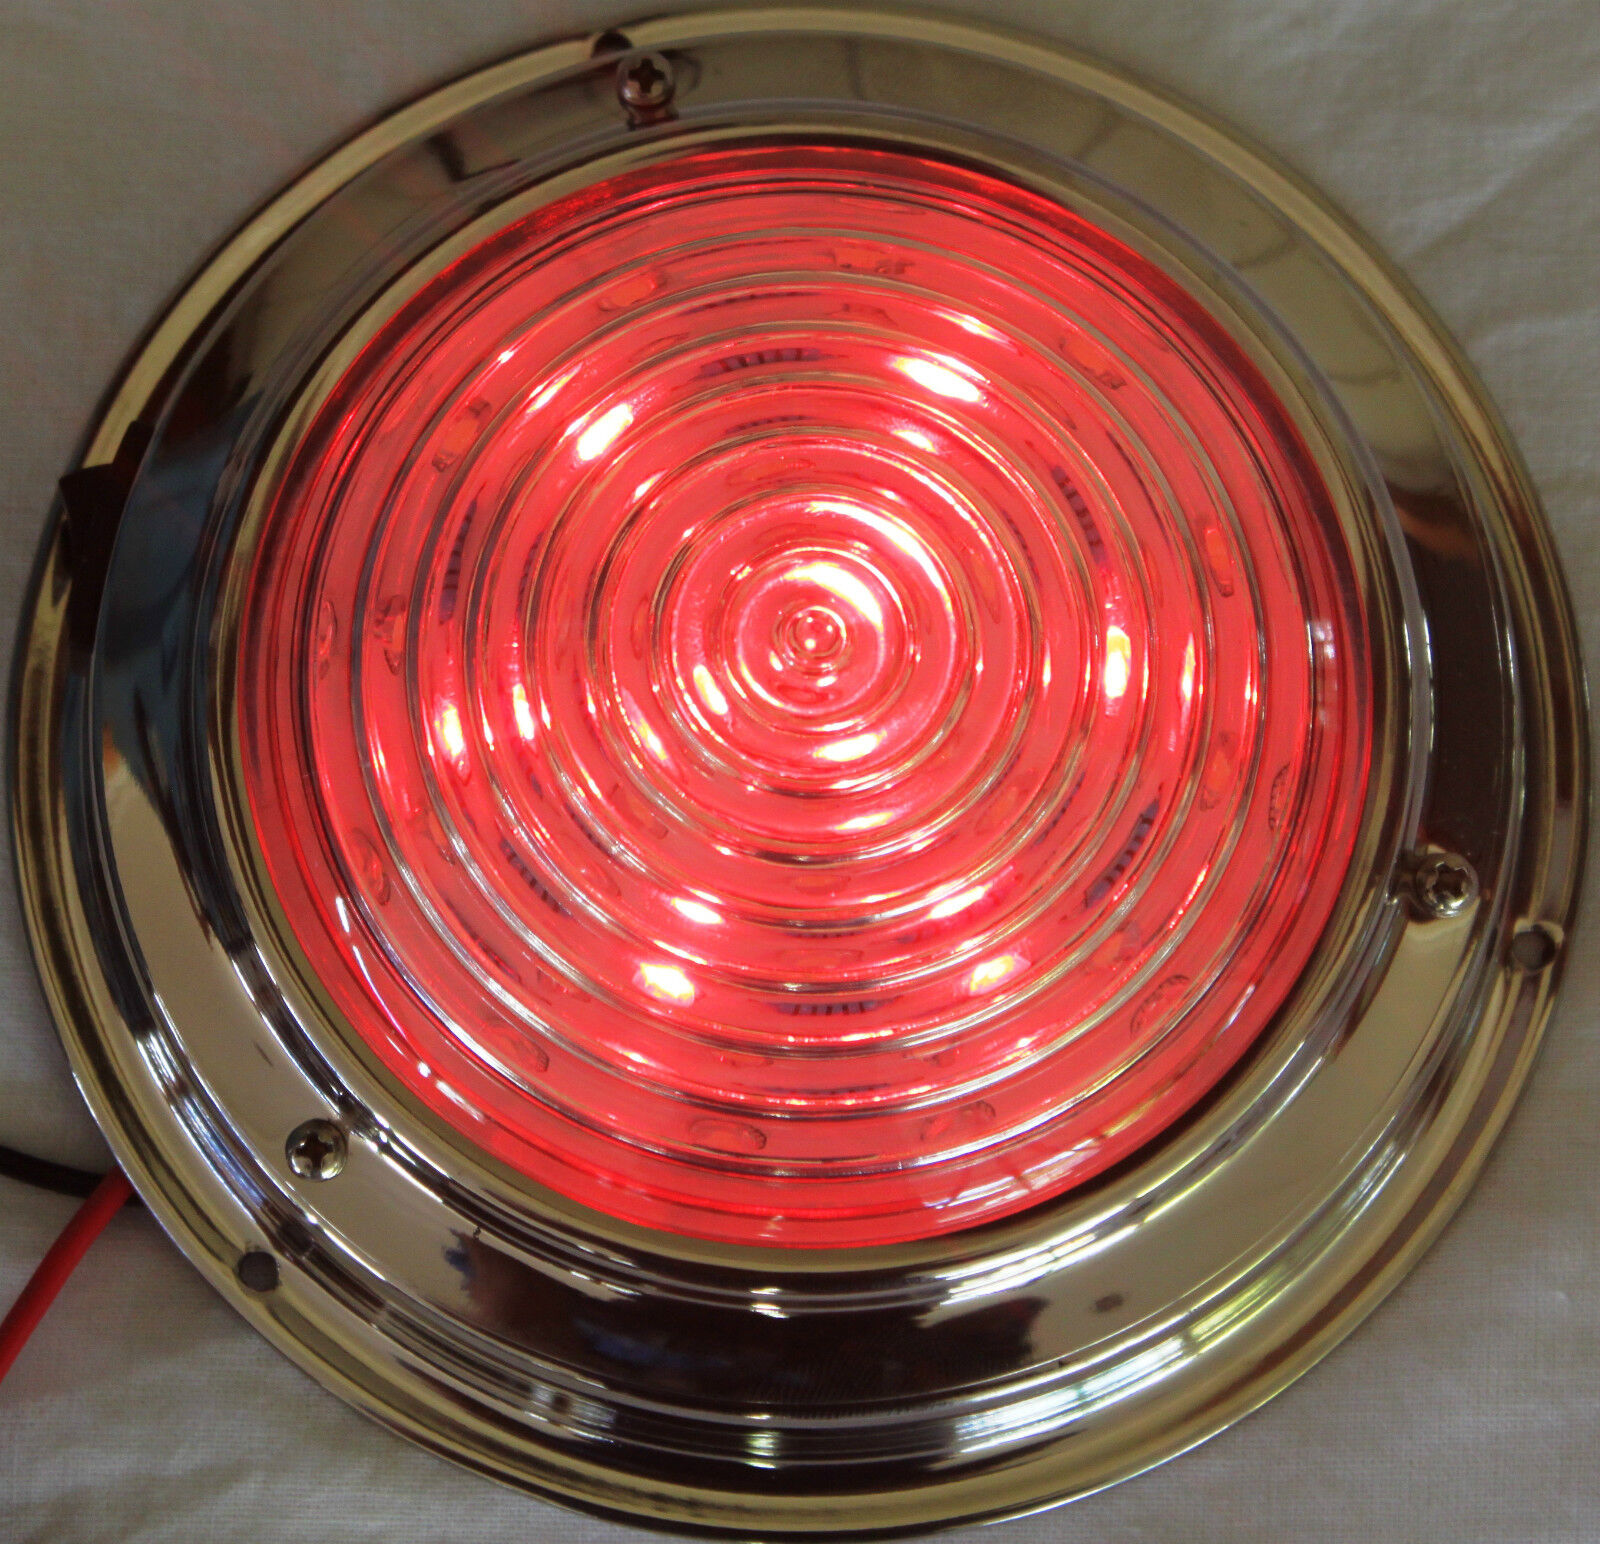 dual colour led dome light 12 volt marine stainless steel red white 138 mm new ebay. Black Bedroom Furniture Sets. Home Design Ideas